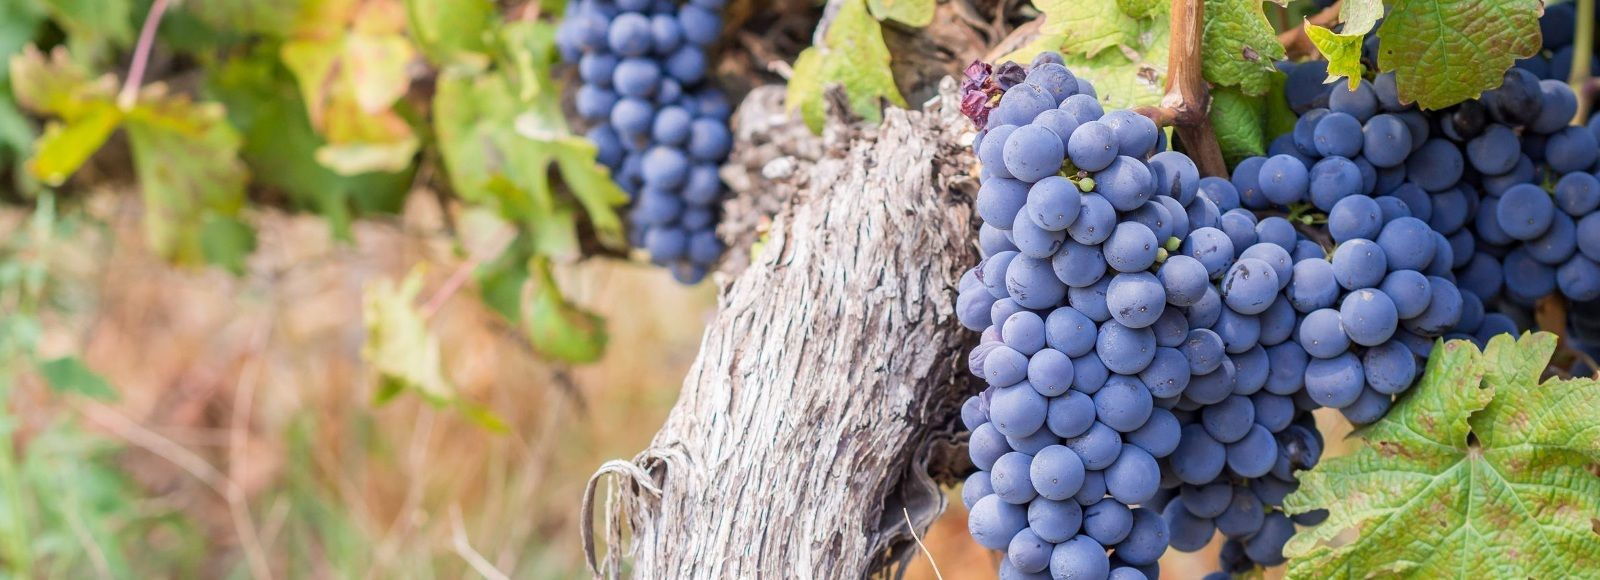 Dine with South Africa's Winemakers​ Tour Trip 2